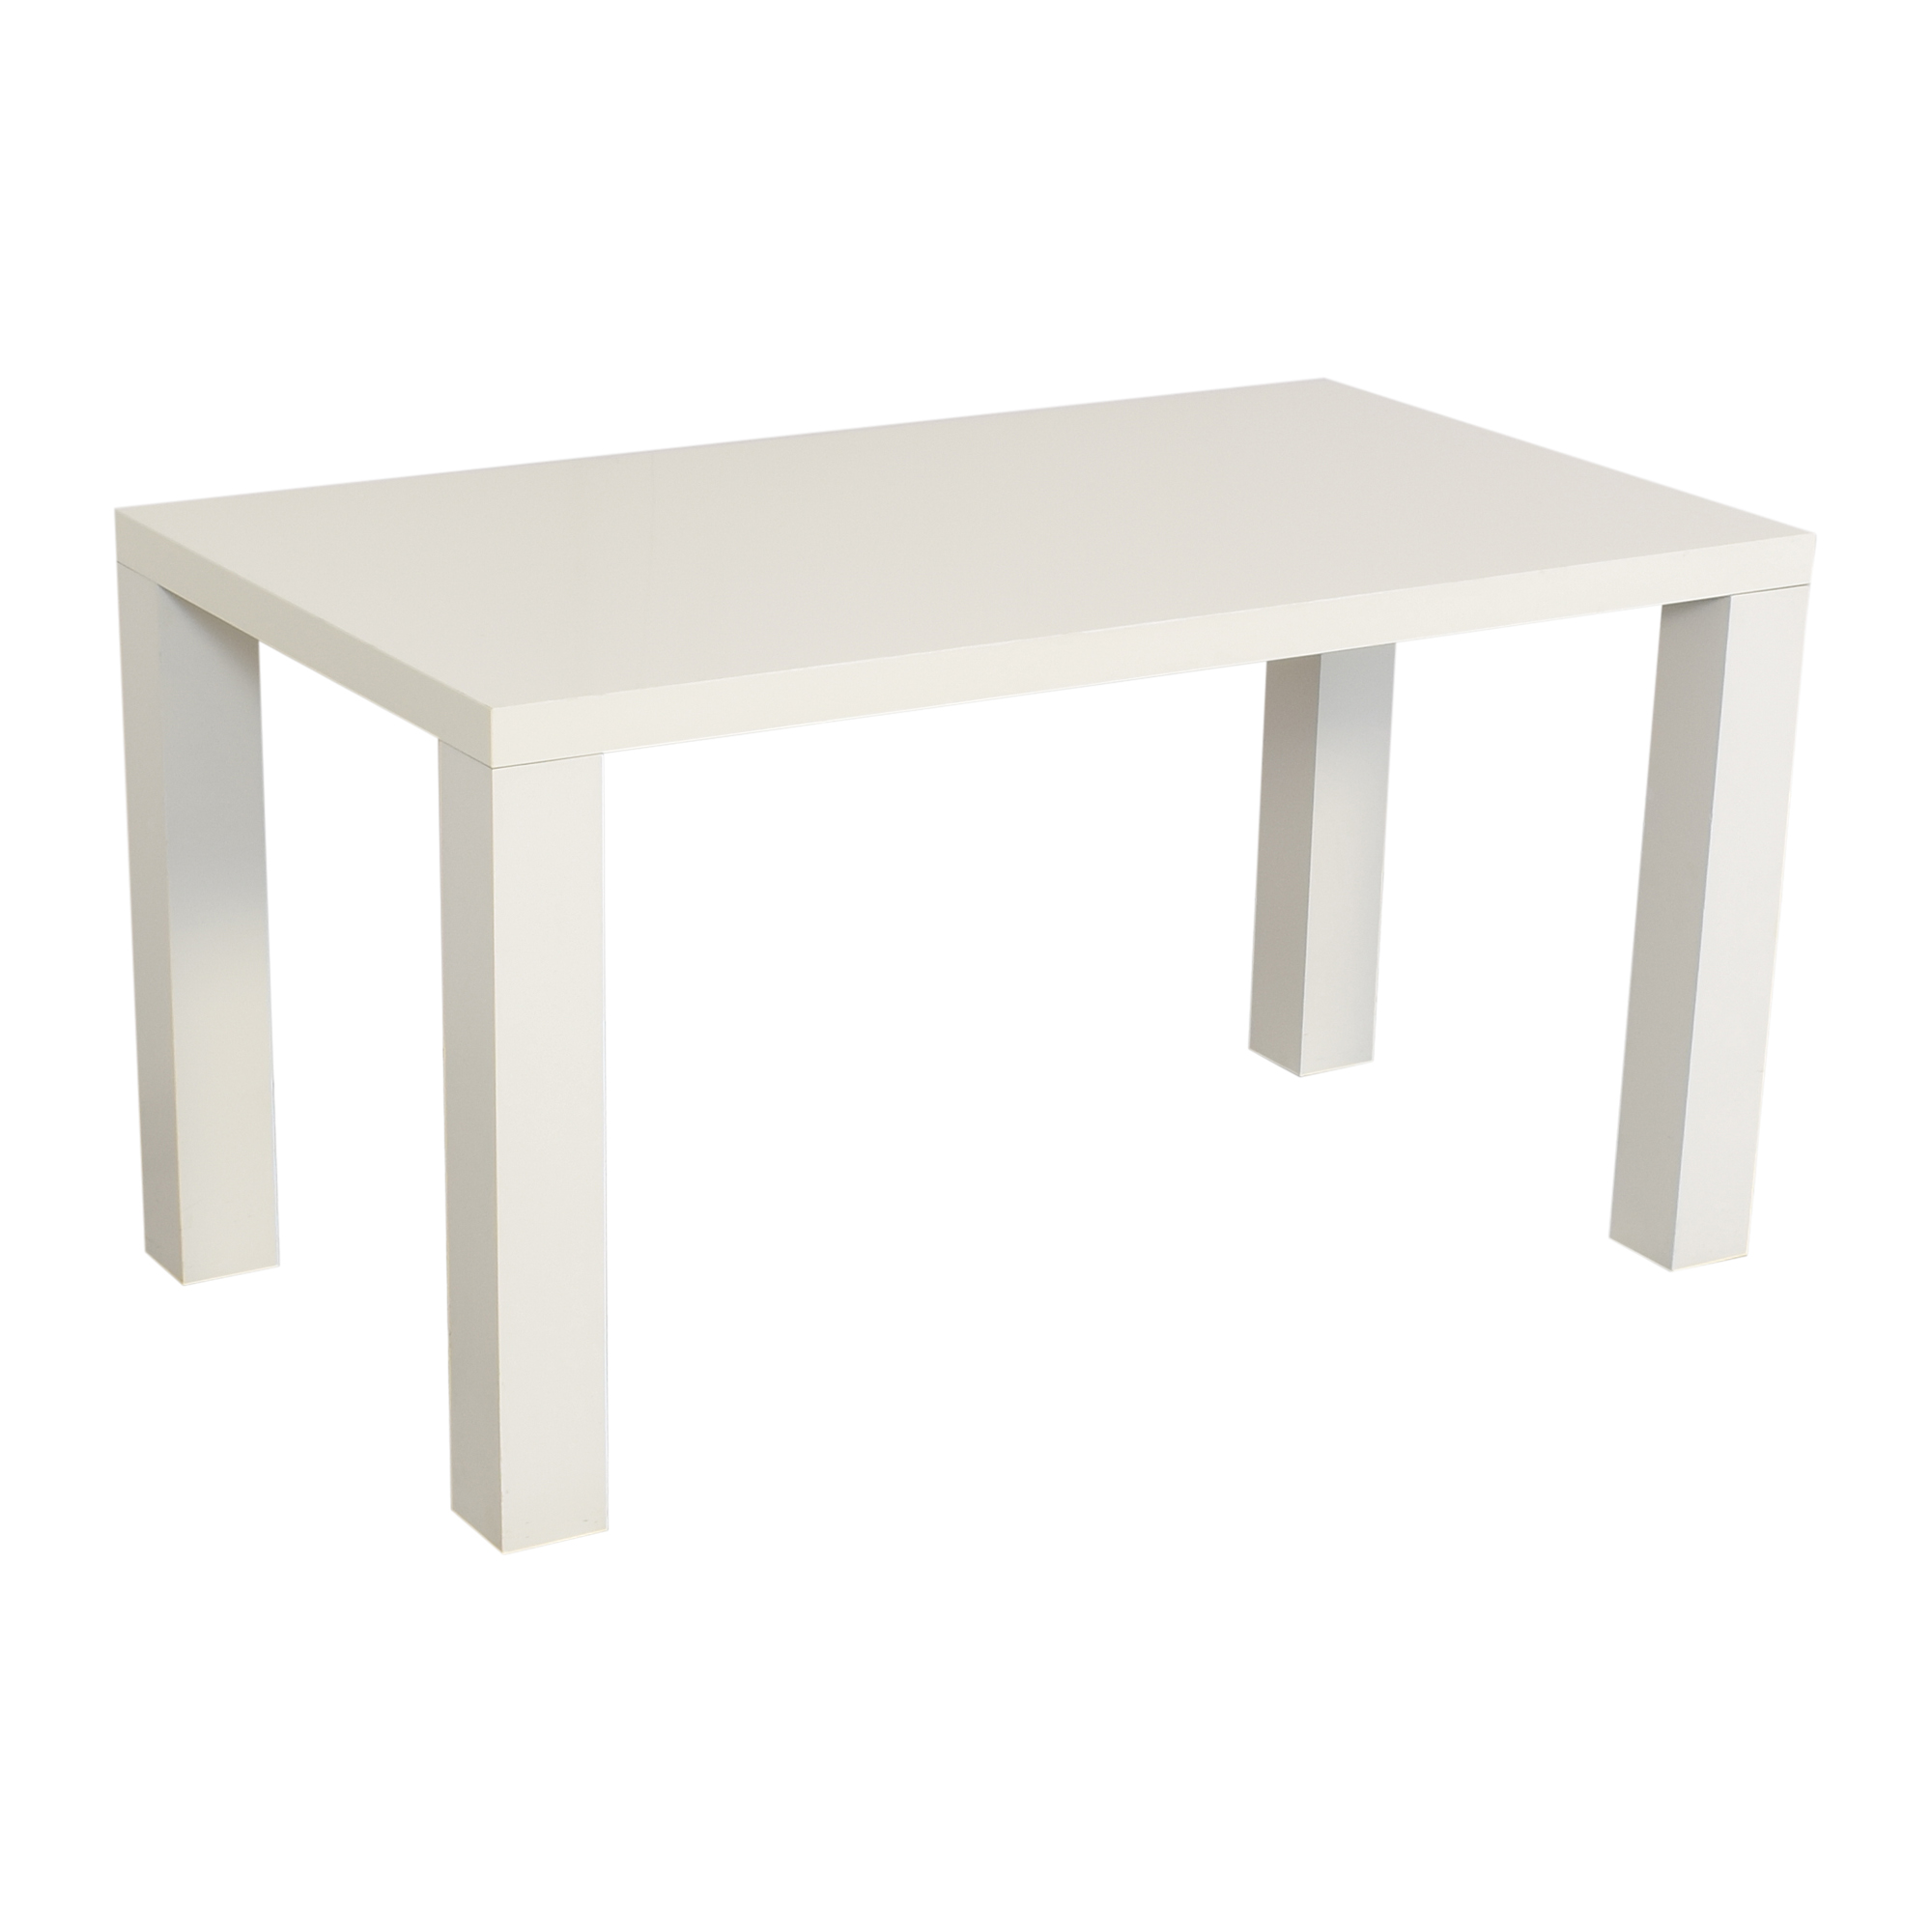 BoConcept BoConcept Dinner Table dimensions